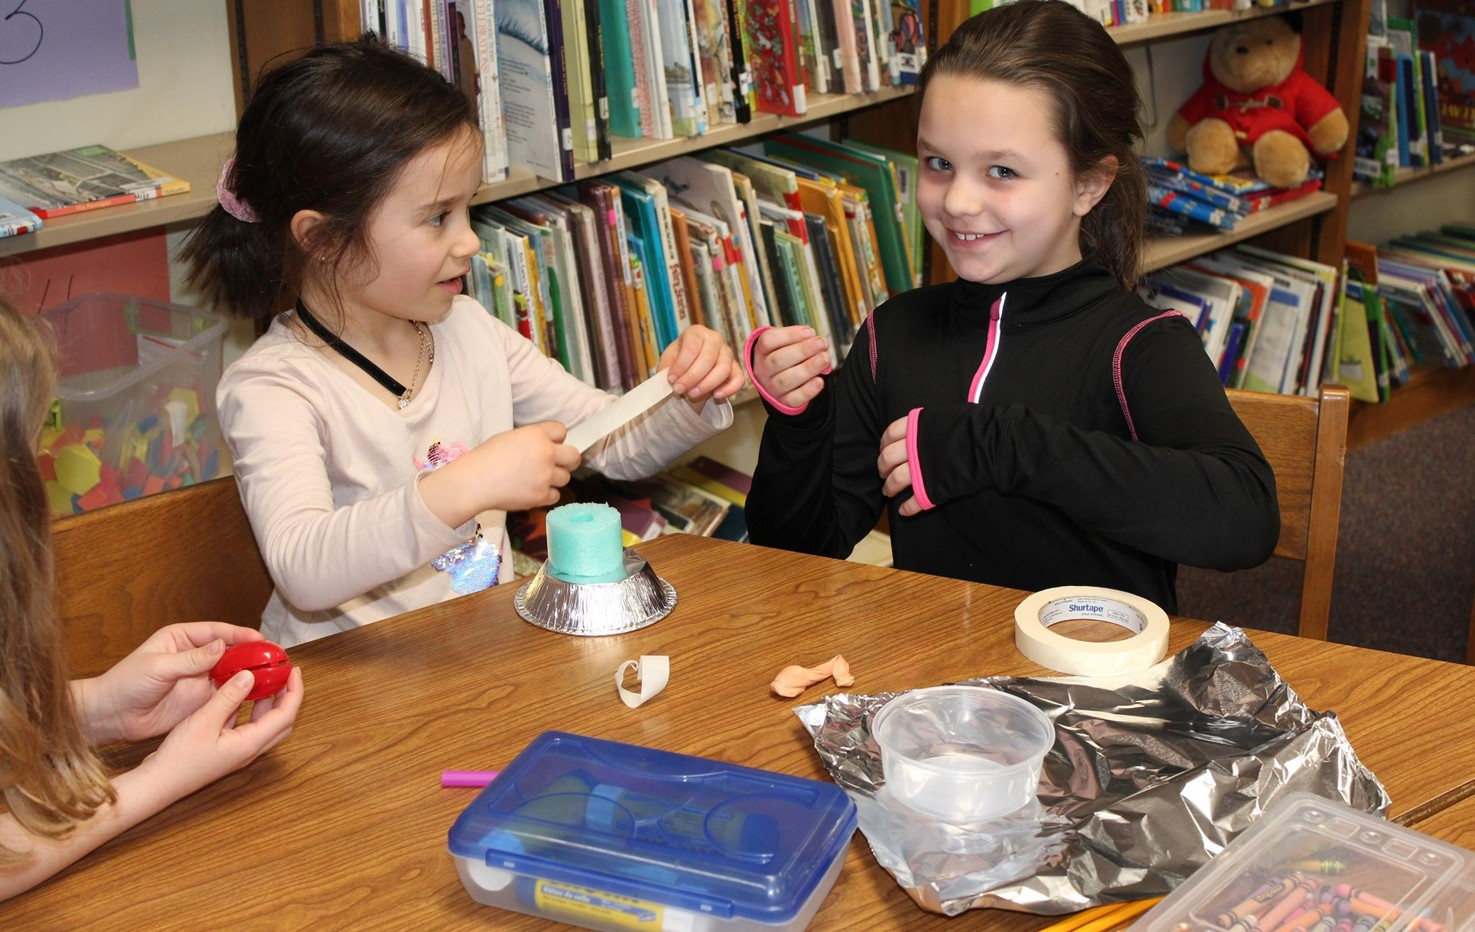 Two students working together on a science experiment